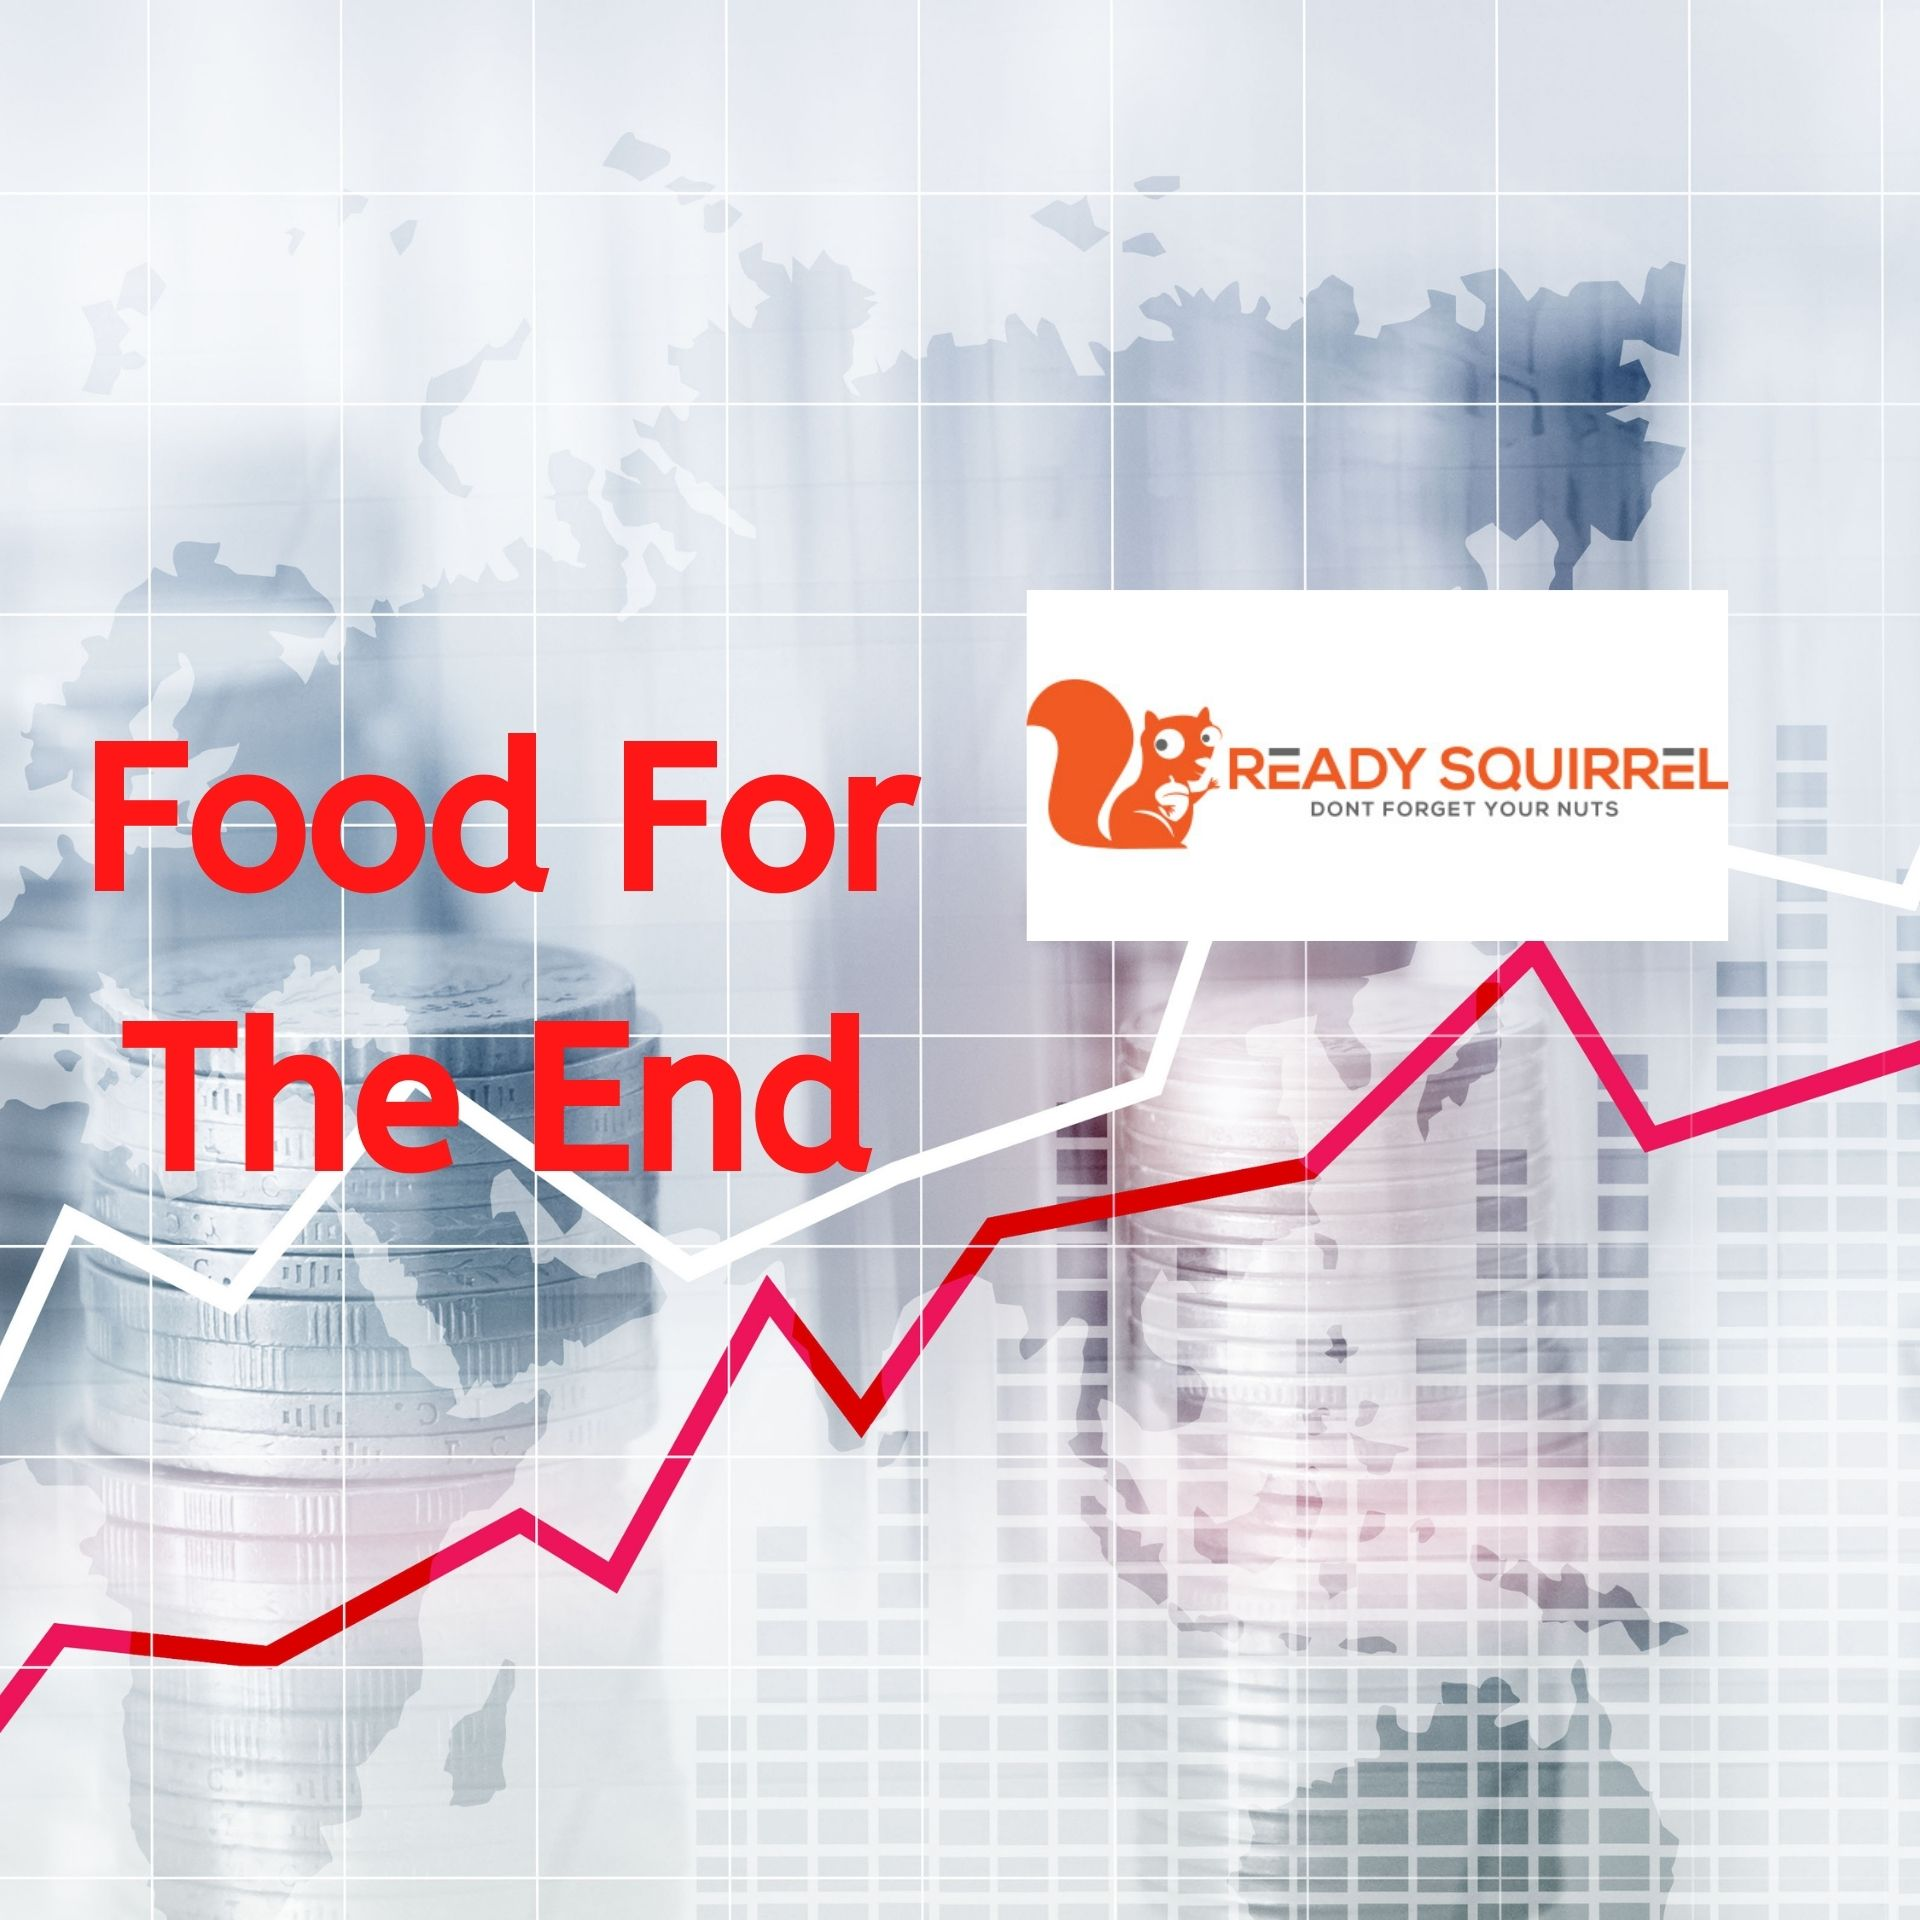 Food For The End